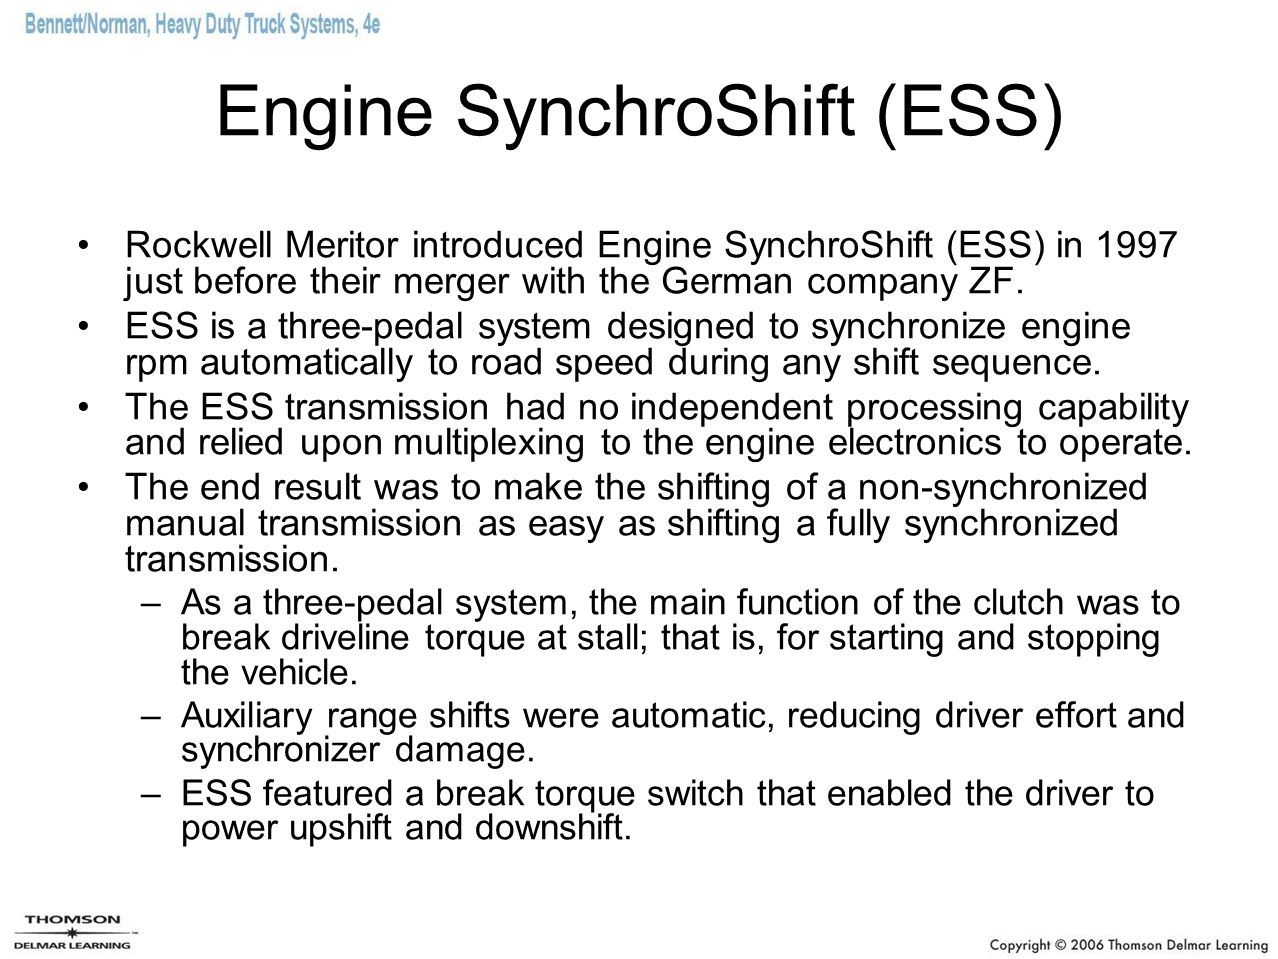 Engine SynchroShift (ESS) Rockwell Meritor introduced Engine SynchroShift (ESS) in 1997 just before their merger with the German company ZF. ESS is a